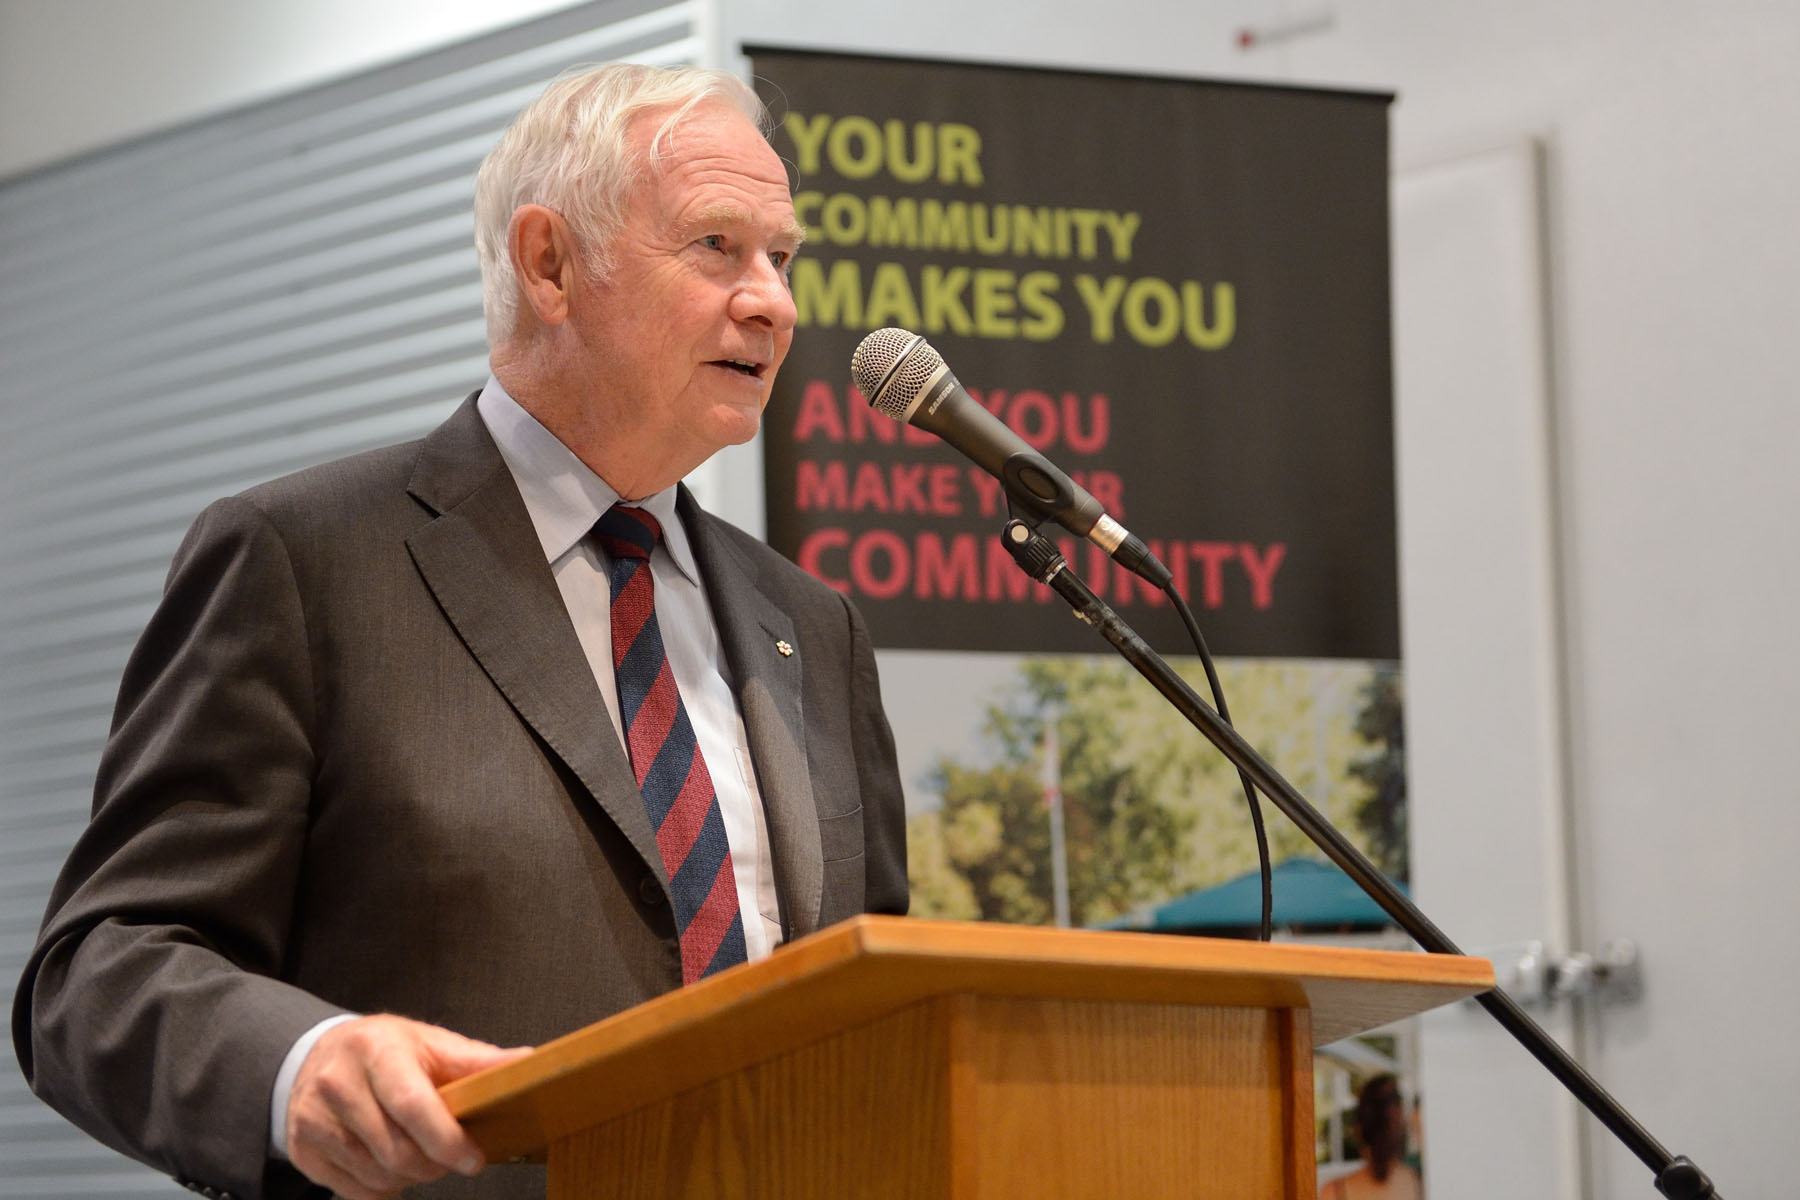 As patron of Community Foundations of Canada, His Excellency delivered a keynote address at the launch of the South Okanagan/Similkameen Smart and Caring Communities Initiative. The focus of this initiative will be to establish community funds and local committees throughout the region.